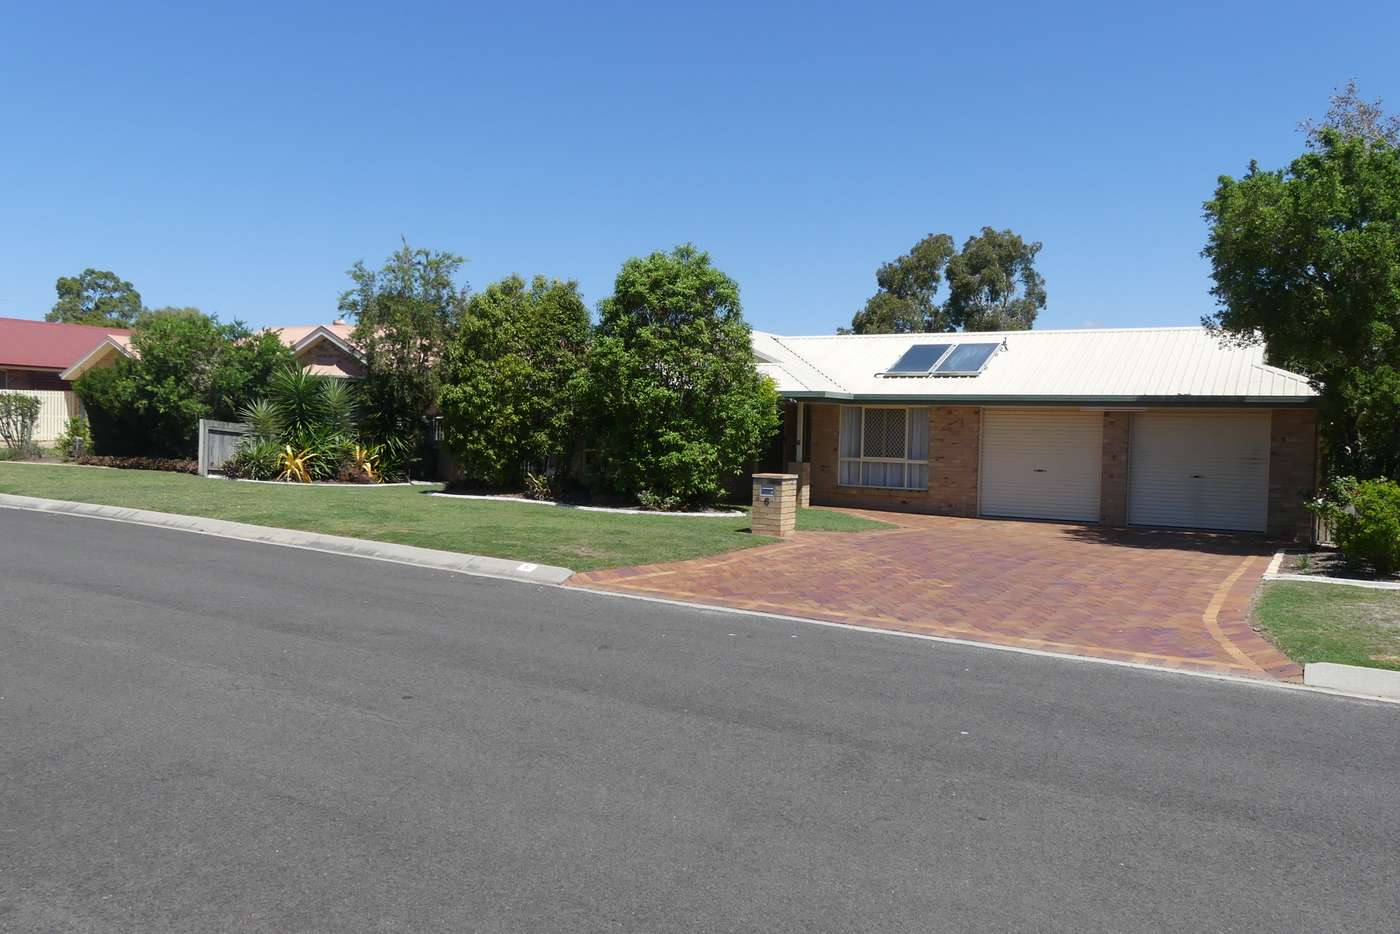 Main view of Homely house listing, 6 Cocas Dr, Avoca QLD 4670